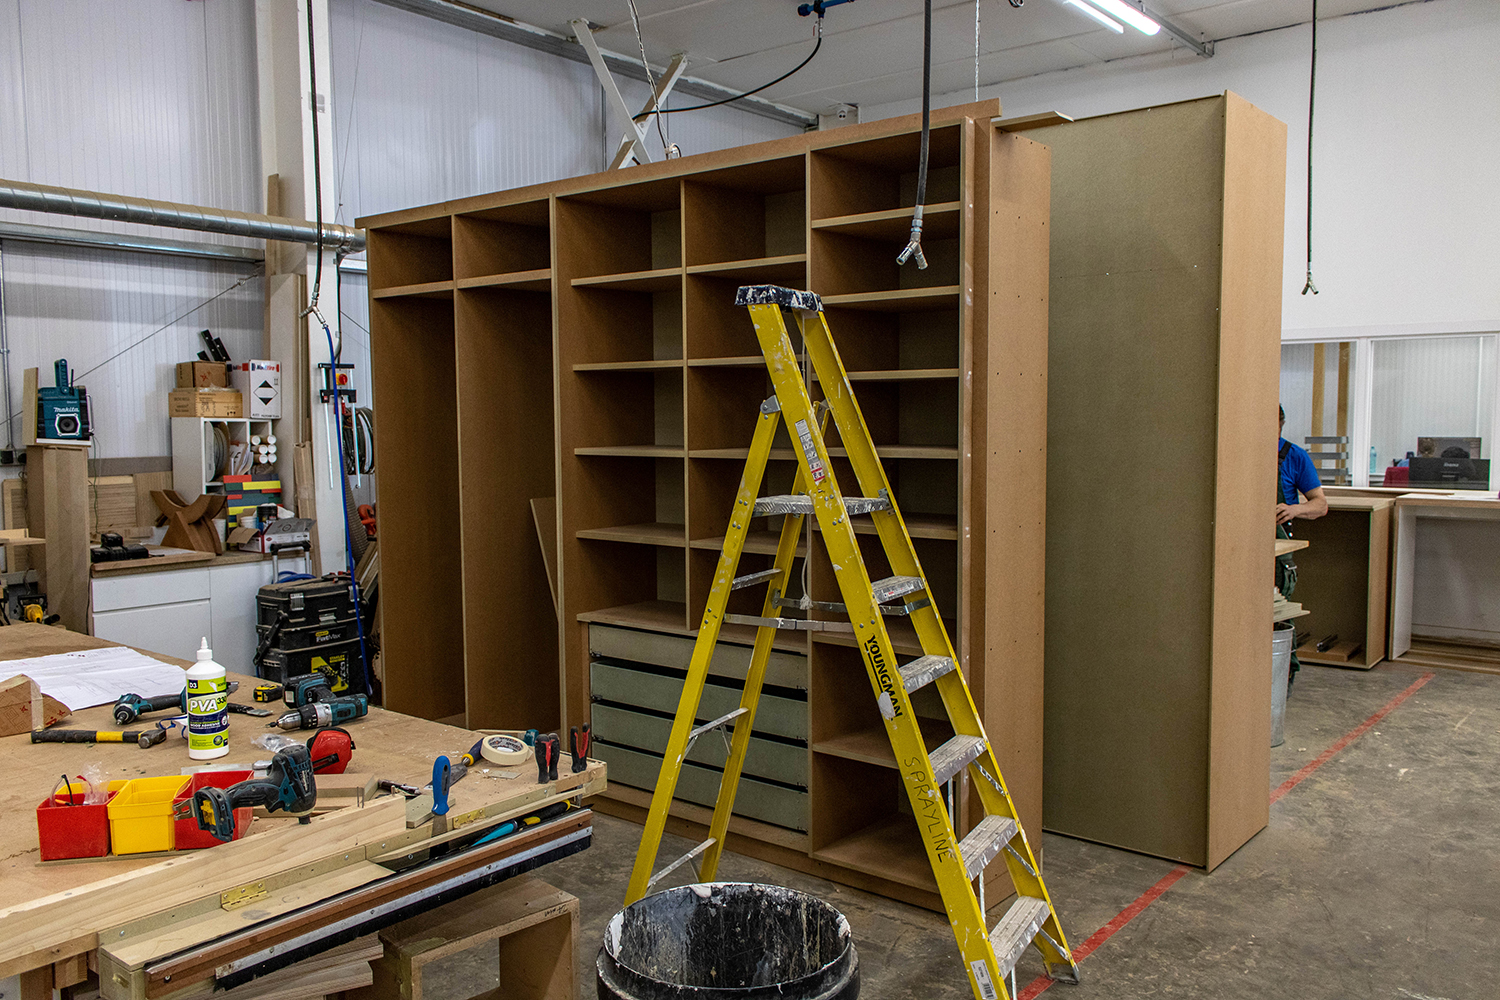 Large modern wardrobe insides and storage in joinery workshop